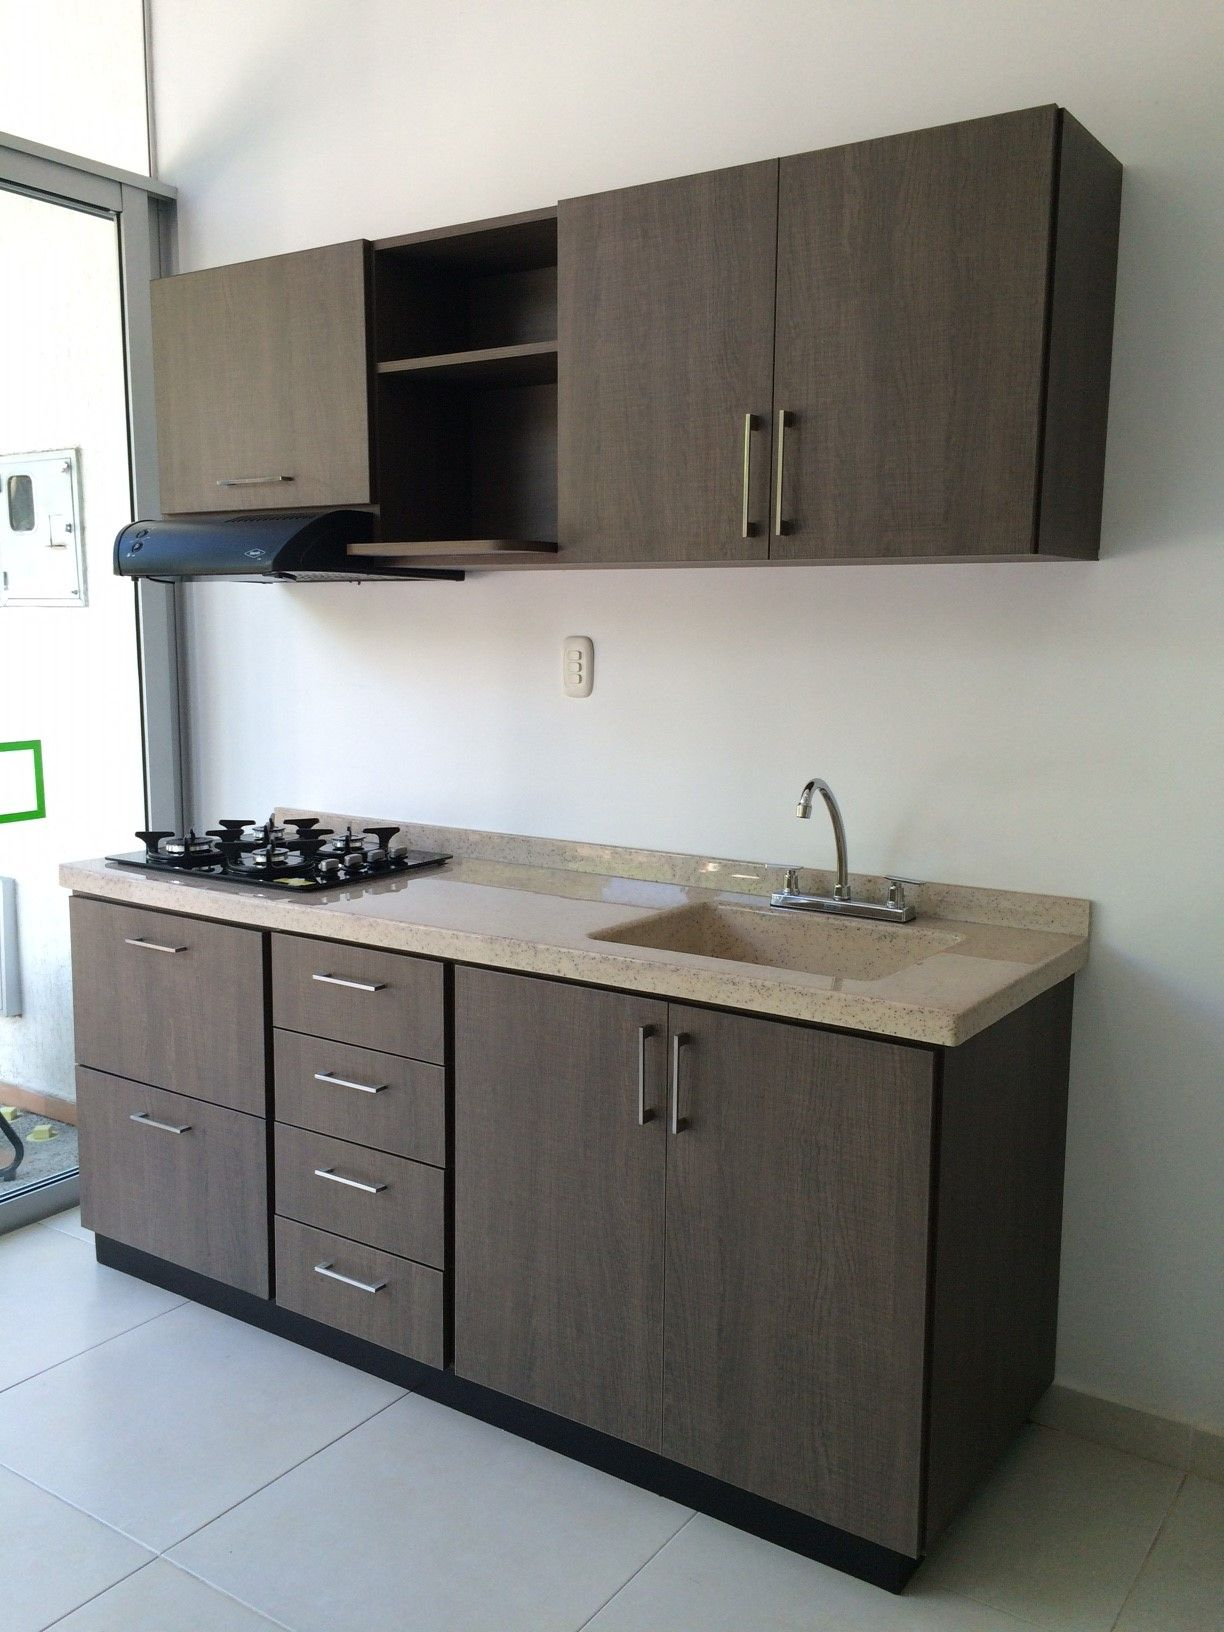 Showroom cozzina colombia melamina vesto decoraci n for Modelos de cocinas modernas pequenas